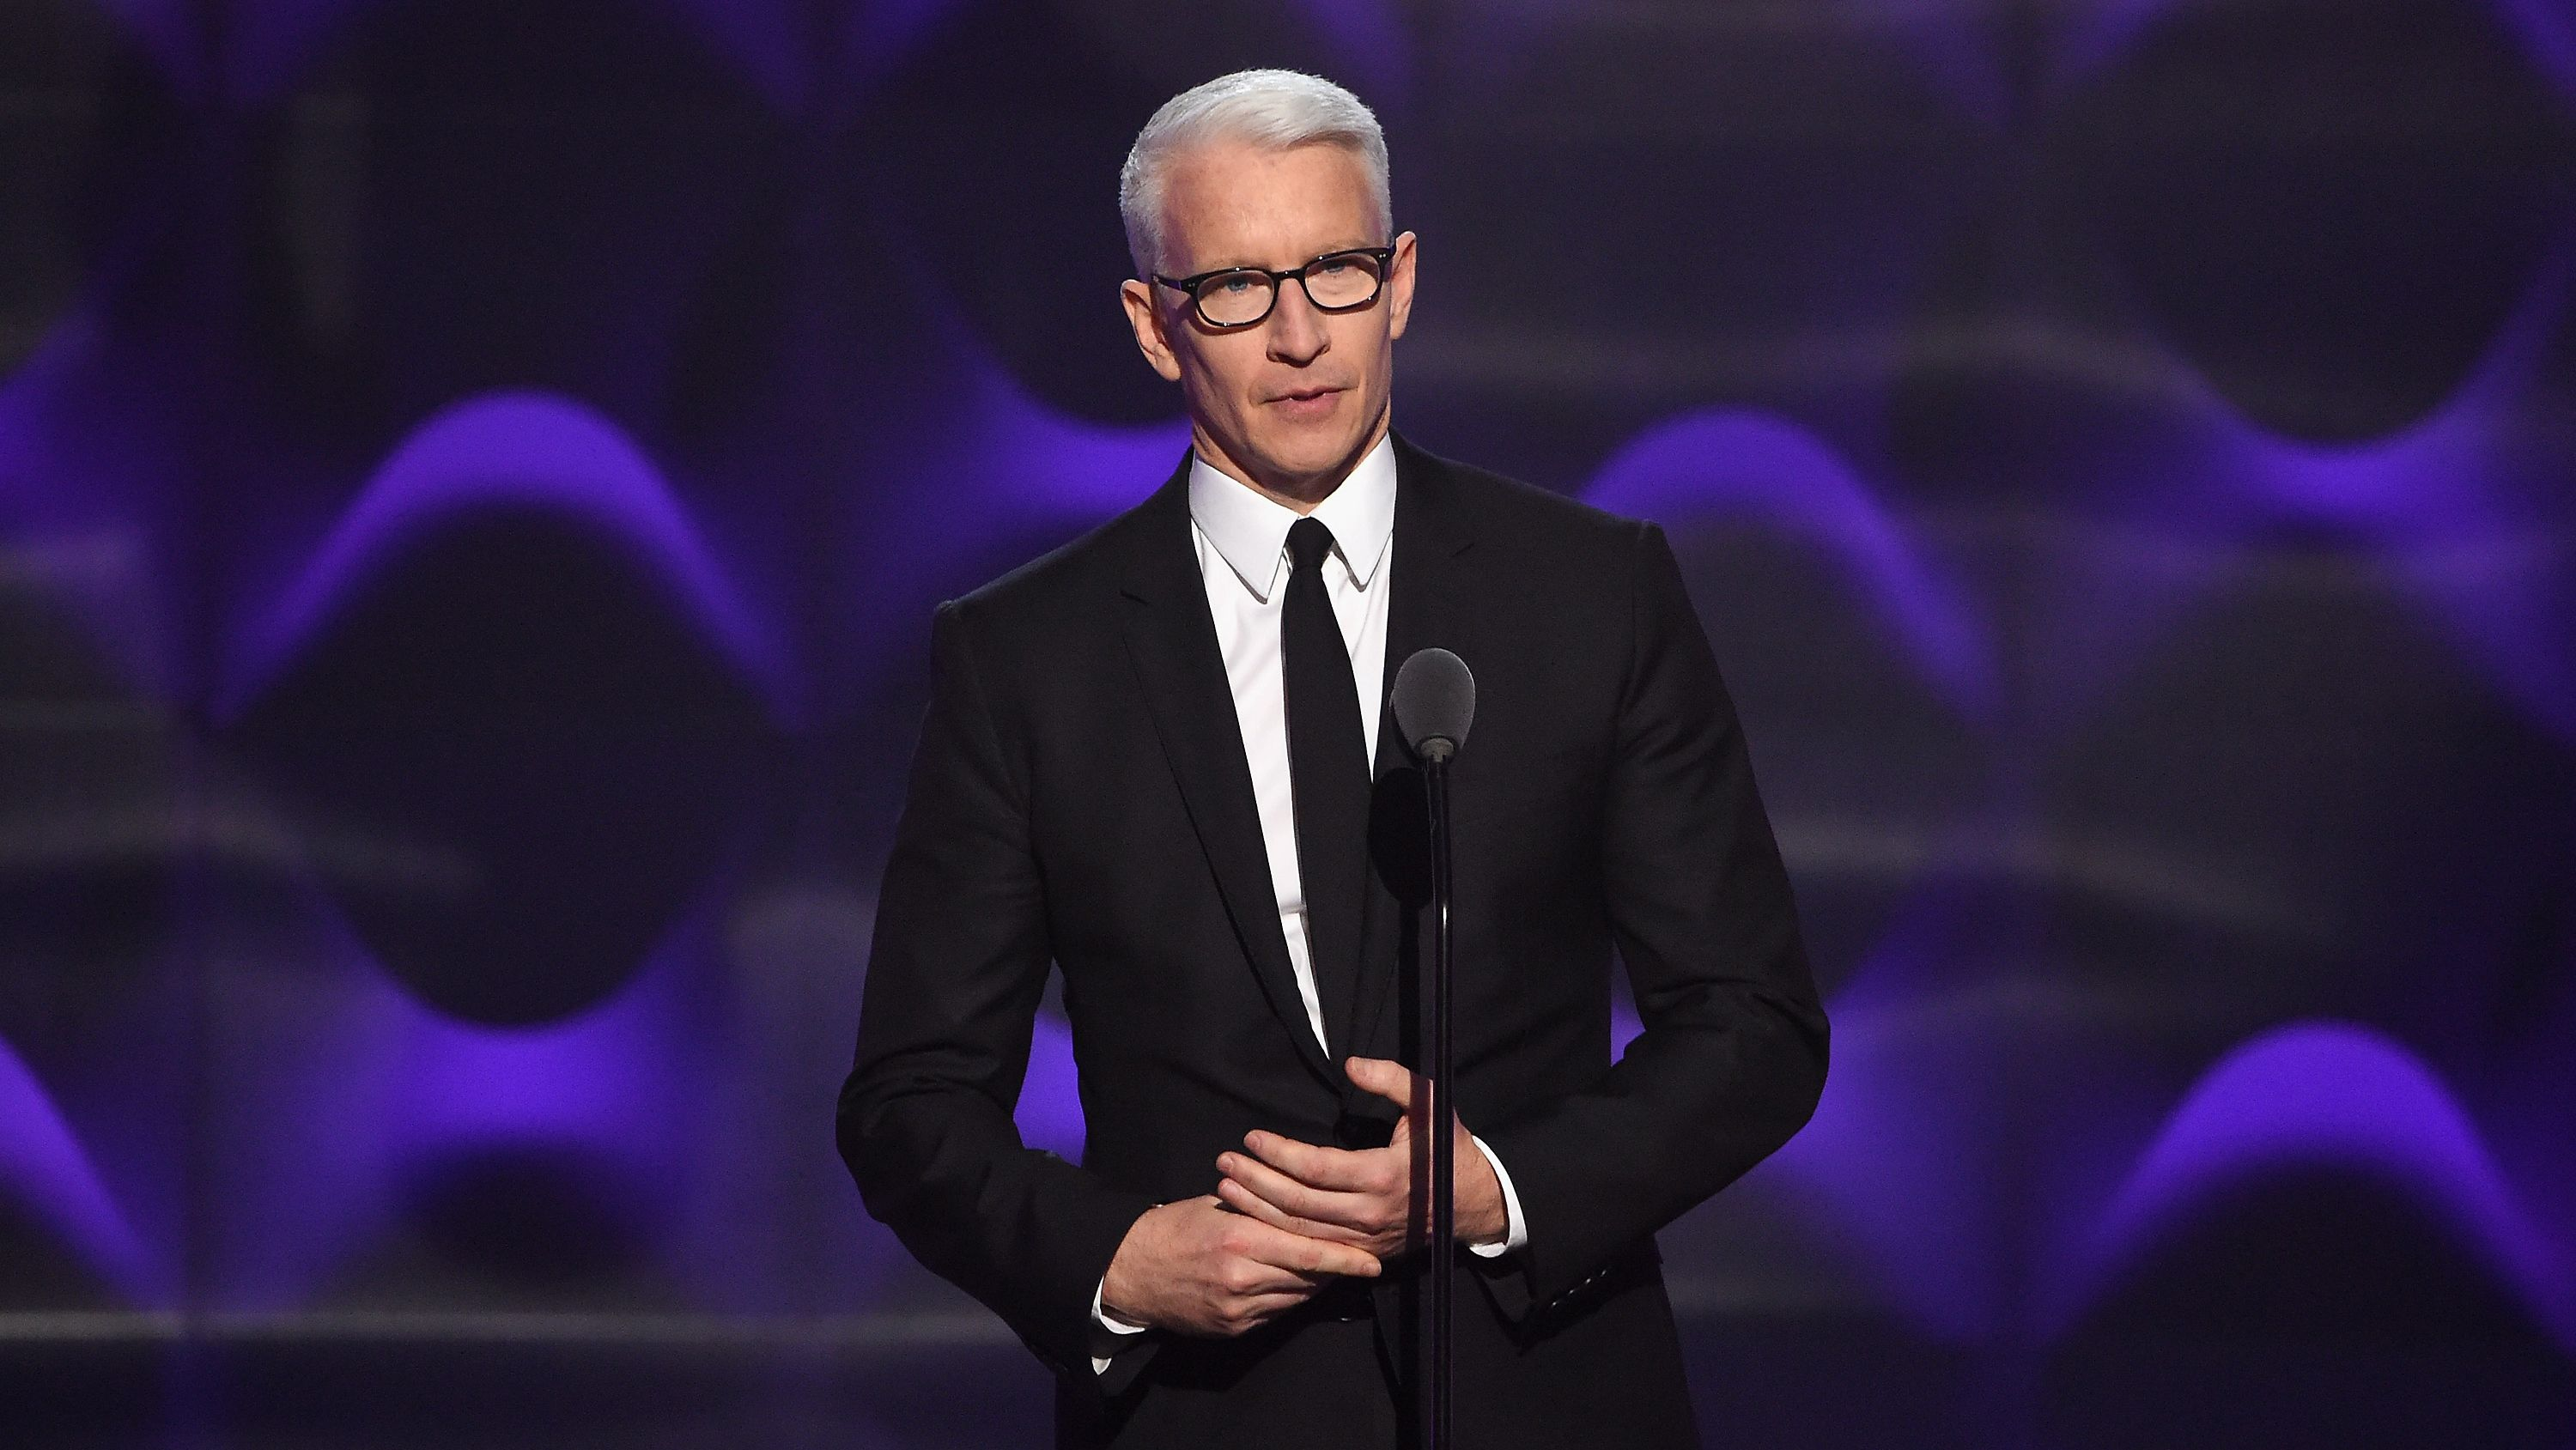 dce78bab6 11 Things You Might Not Know About Anderson Cooper